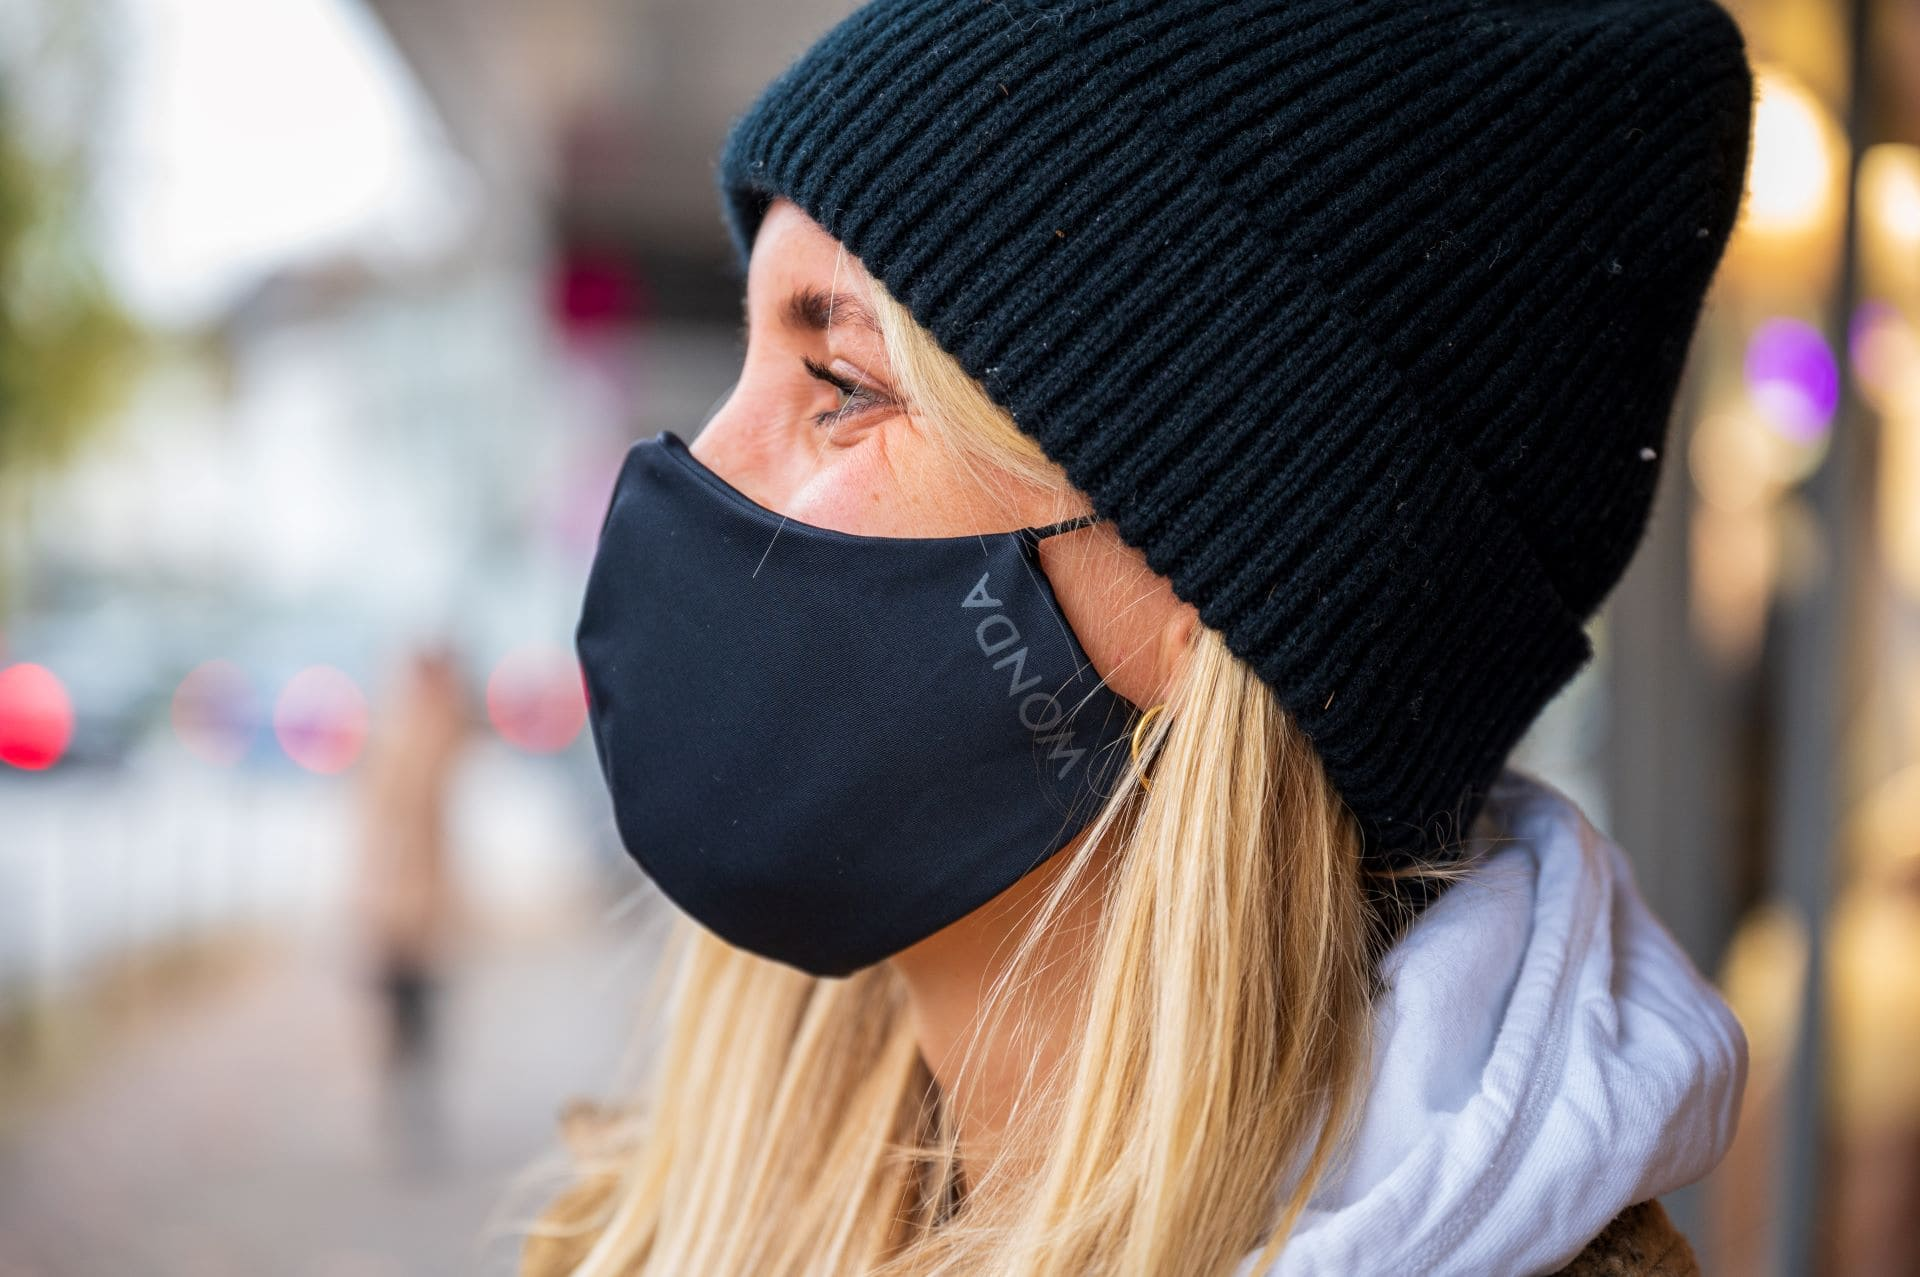 WONDA face mask made from recycled ocean and landfil plastic and easy to breathe